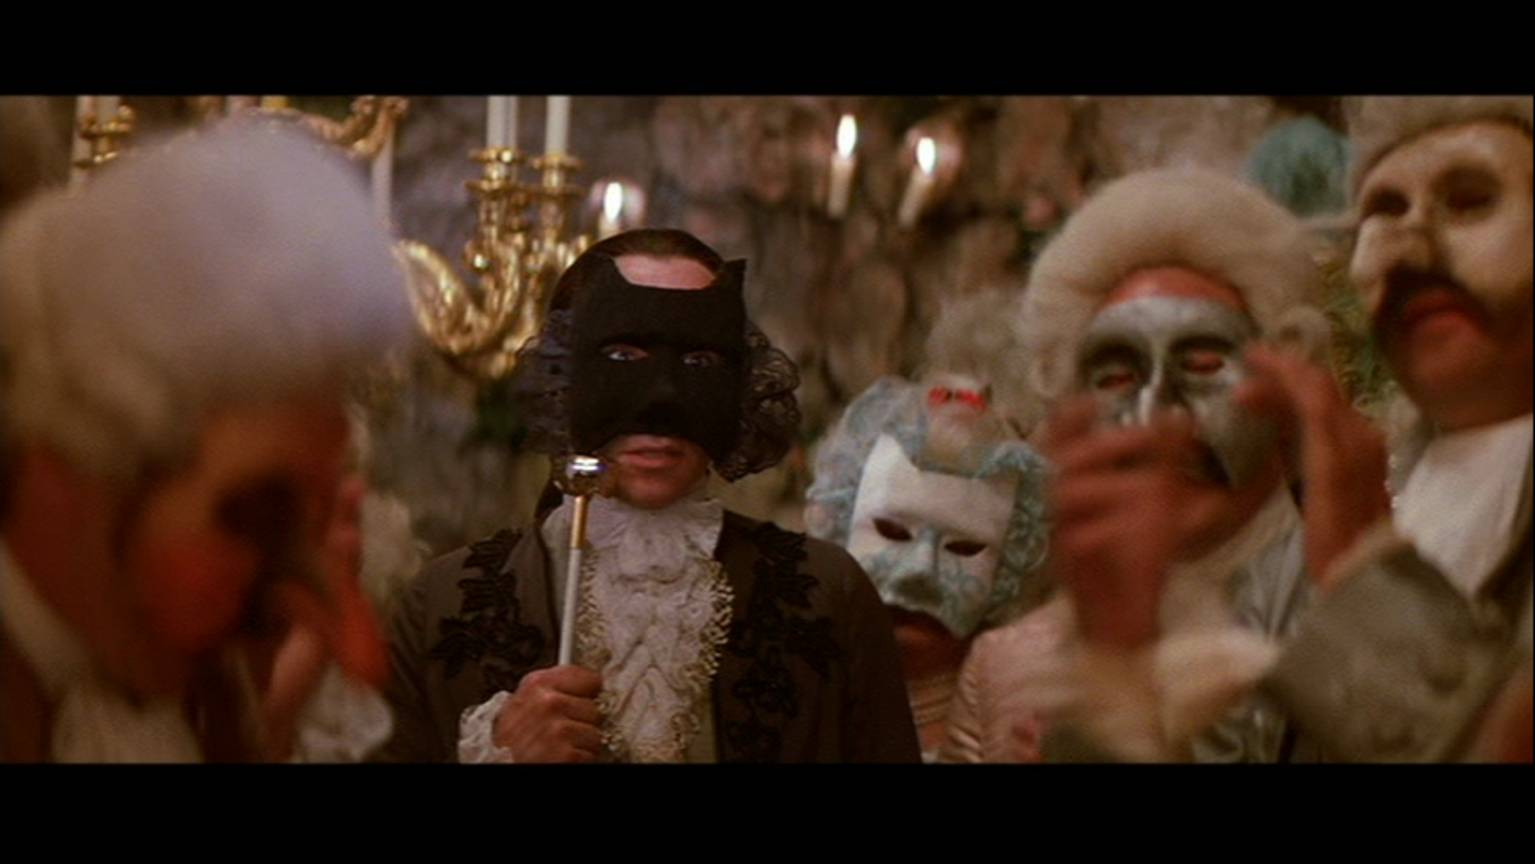 amadeus movie by milos forman film studies essay Milos forman's amadeus is not about the genius of mozart but about the envy of his rival salieri, whose curse was to have the talent of a third-rate composer but the ear of a first-rate music lover, so that he knew how bad he was, and how good mozart was.